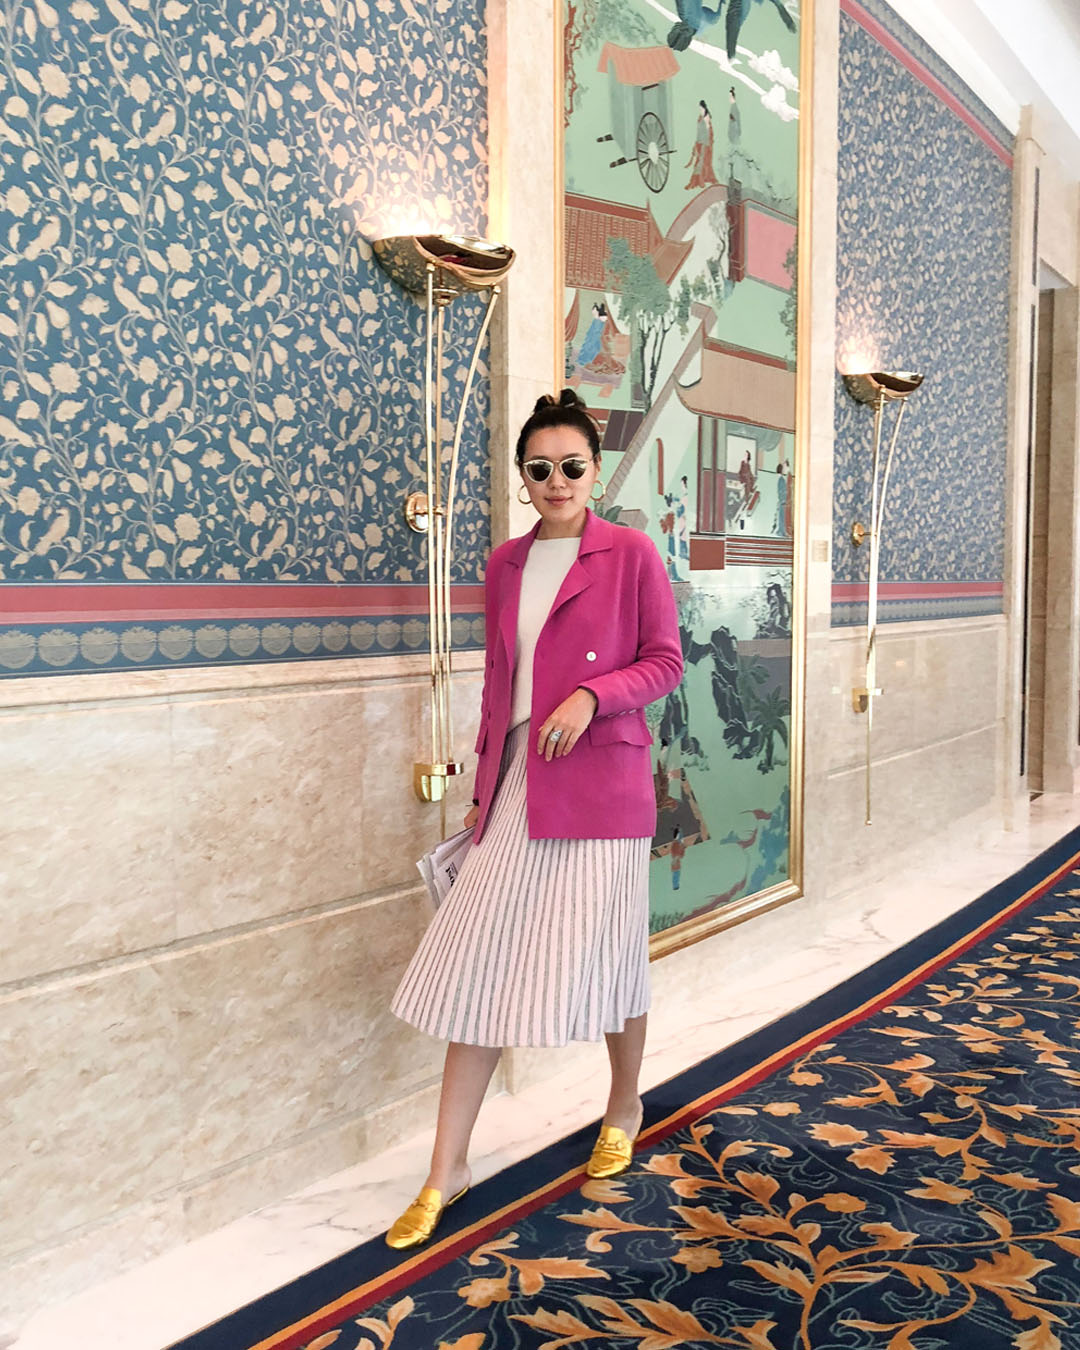 Designer Mandkhai wearing Mandkhai suit blazer and skirt